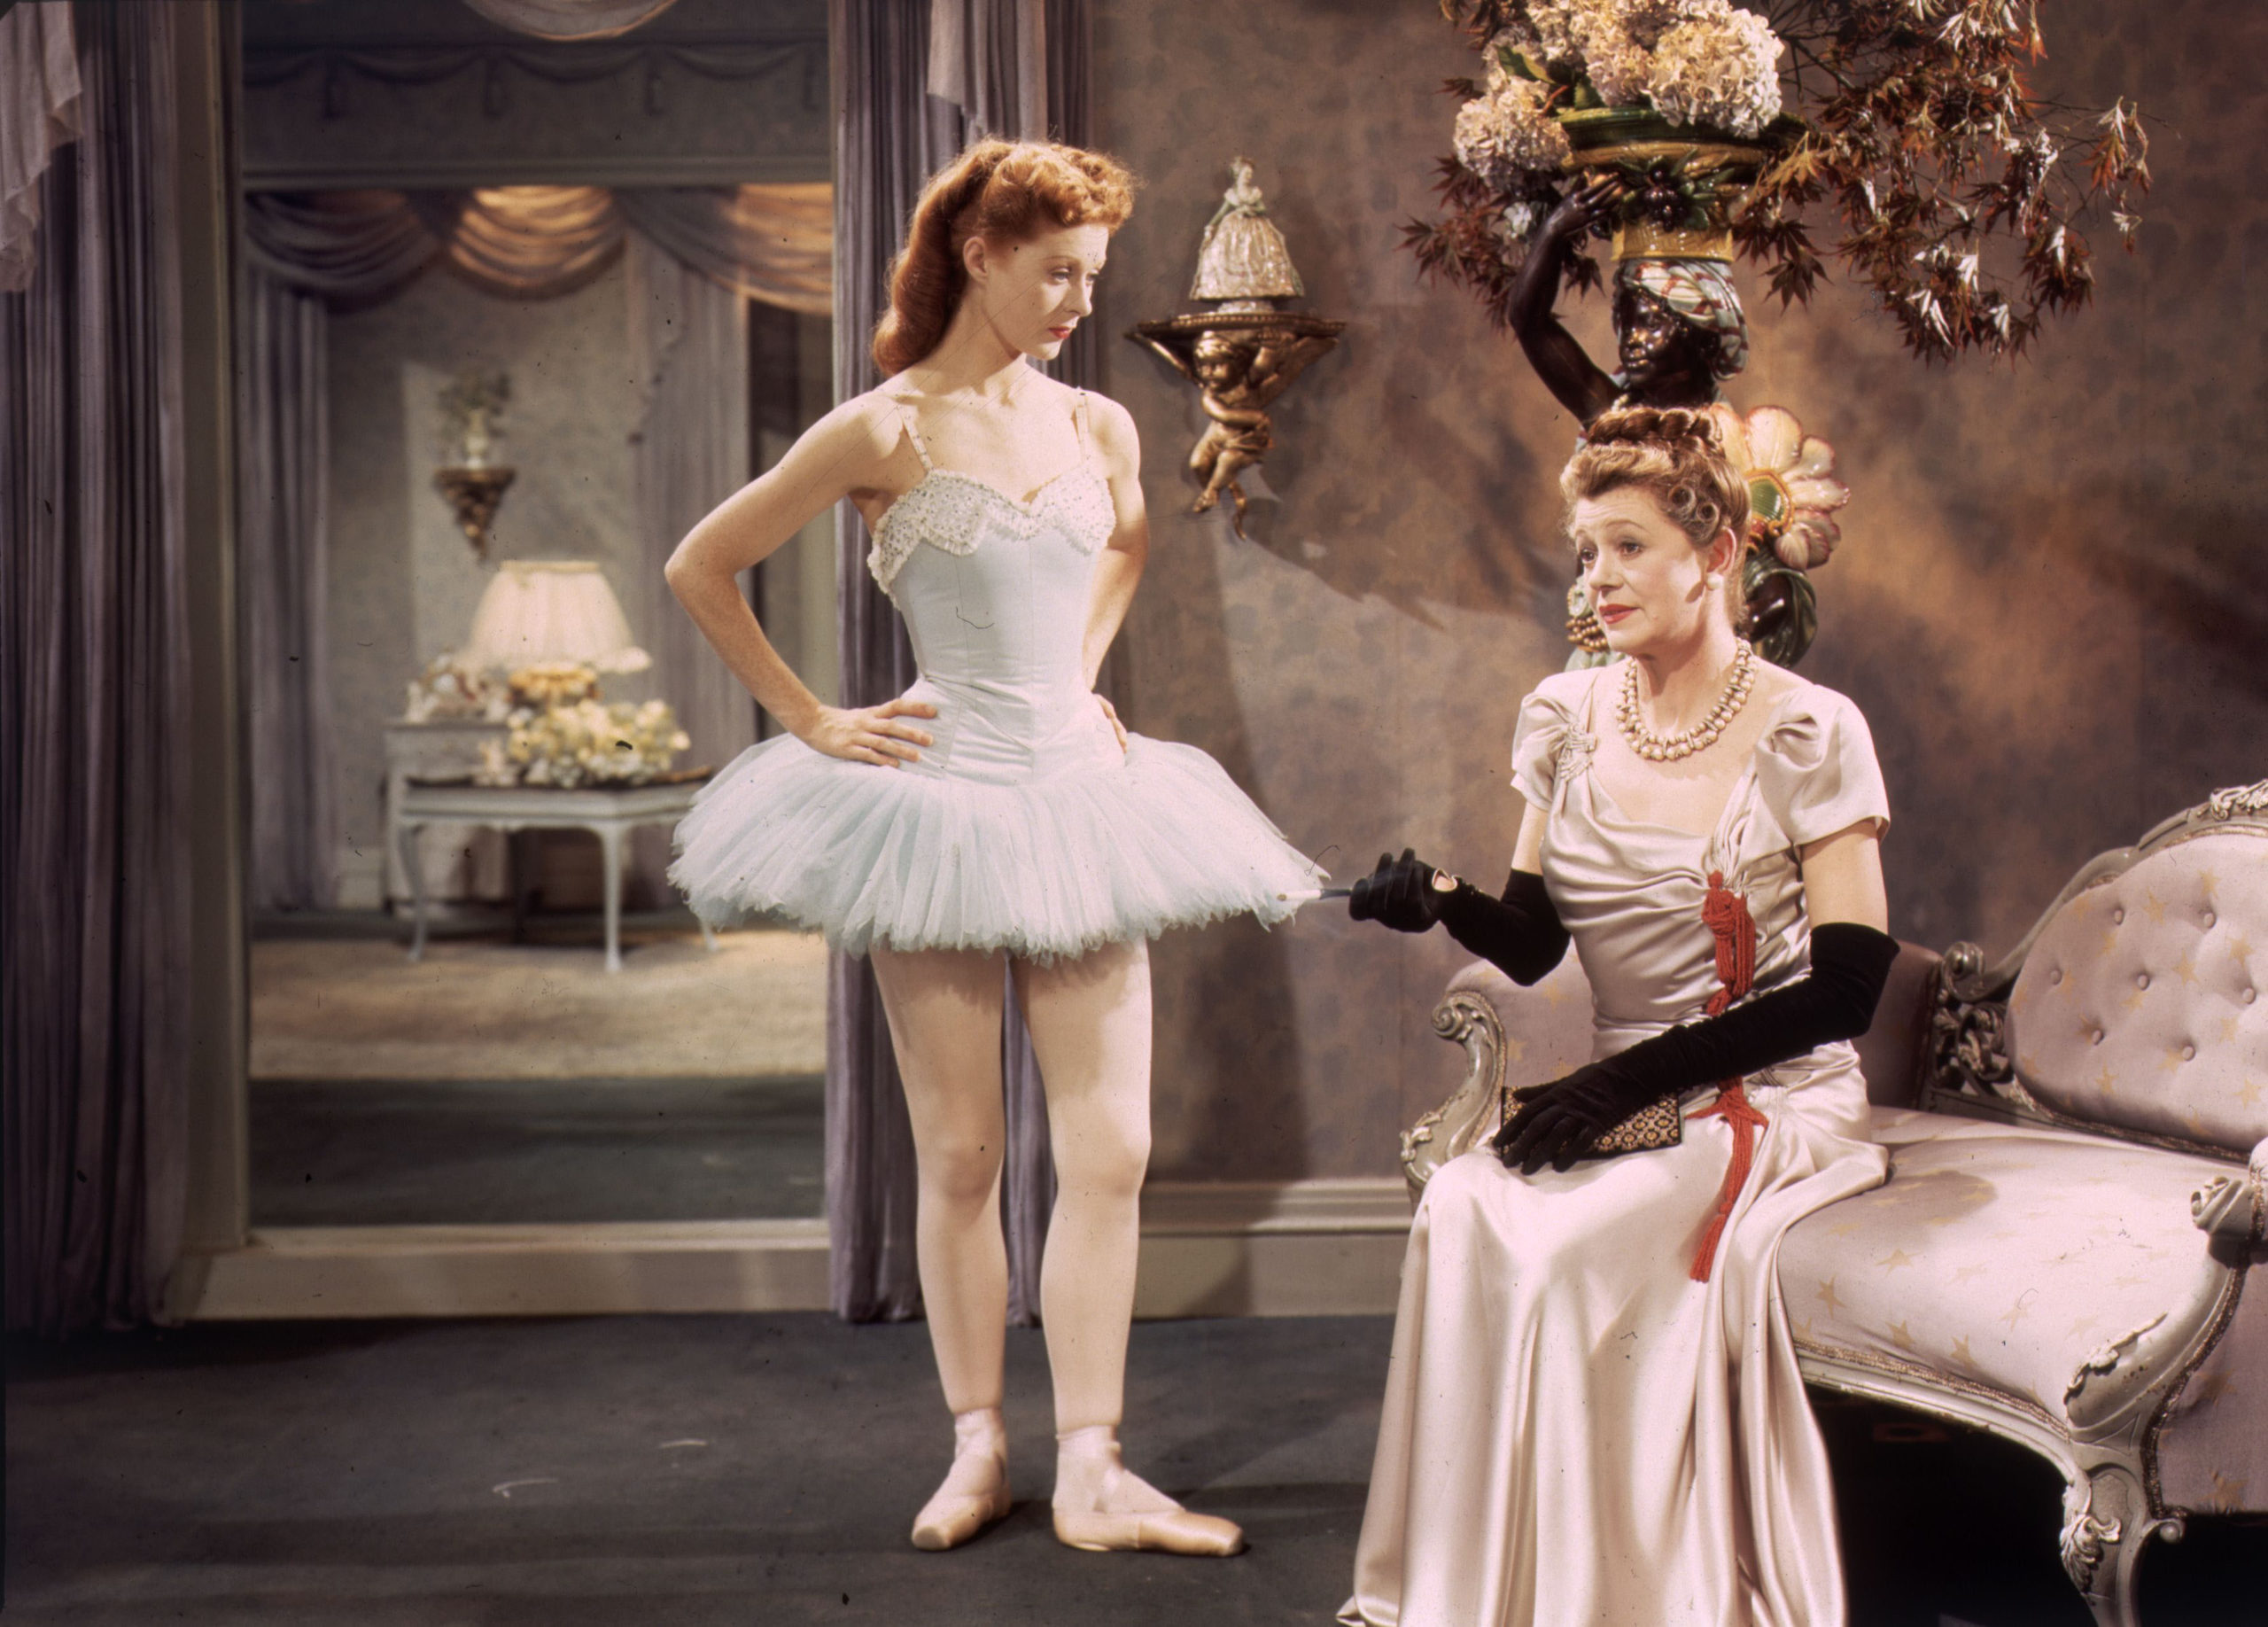 ballet dancer with hands on hips looks at seated woman in formal gown